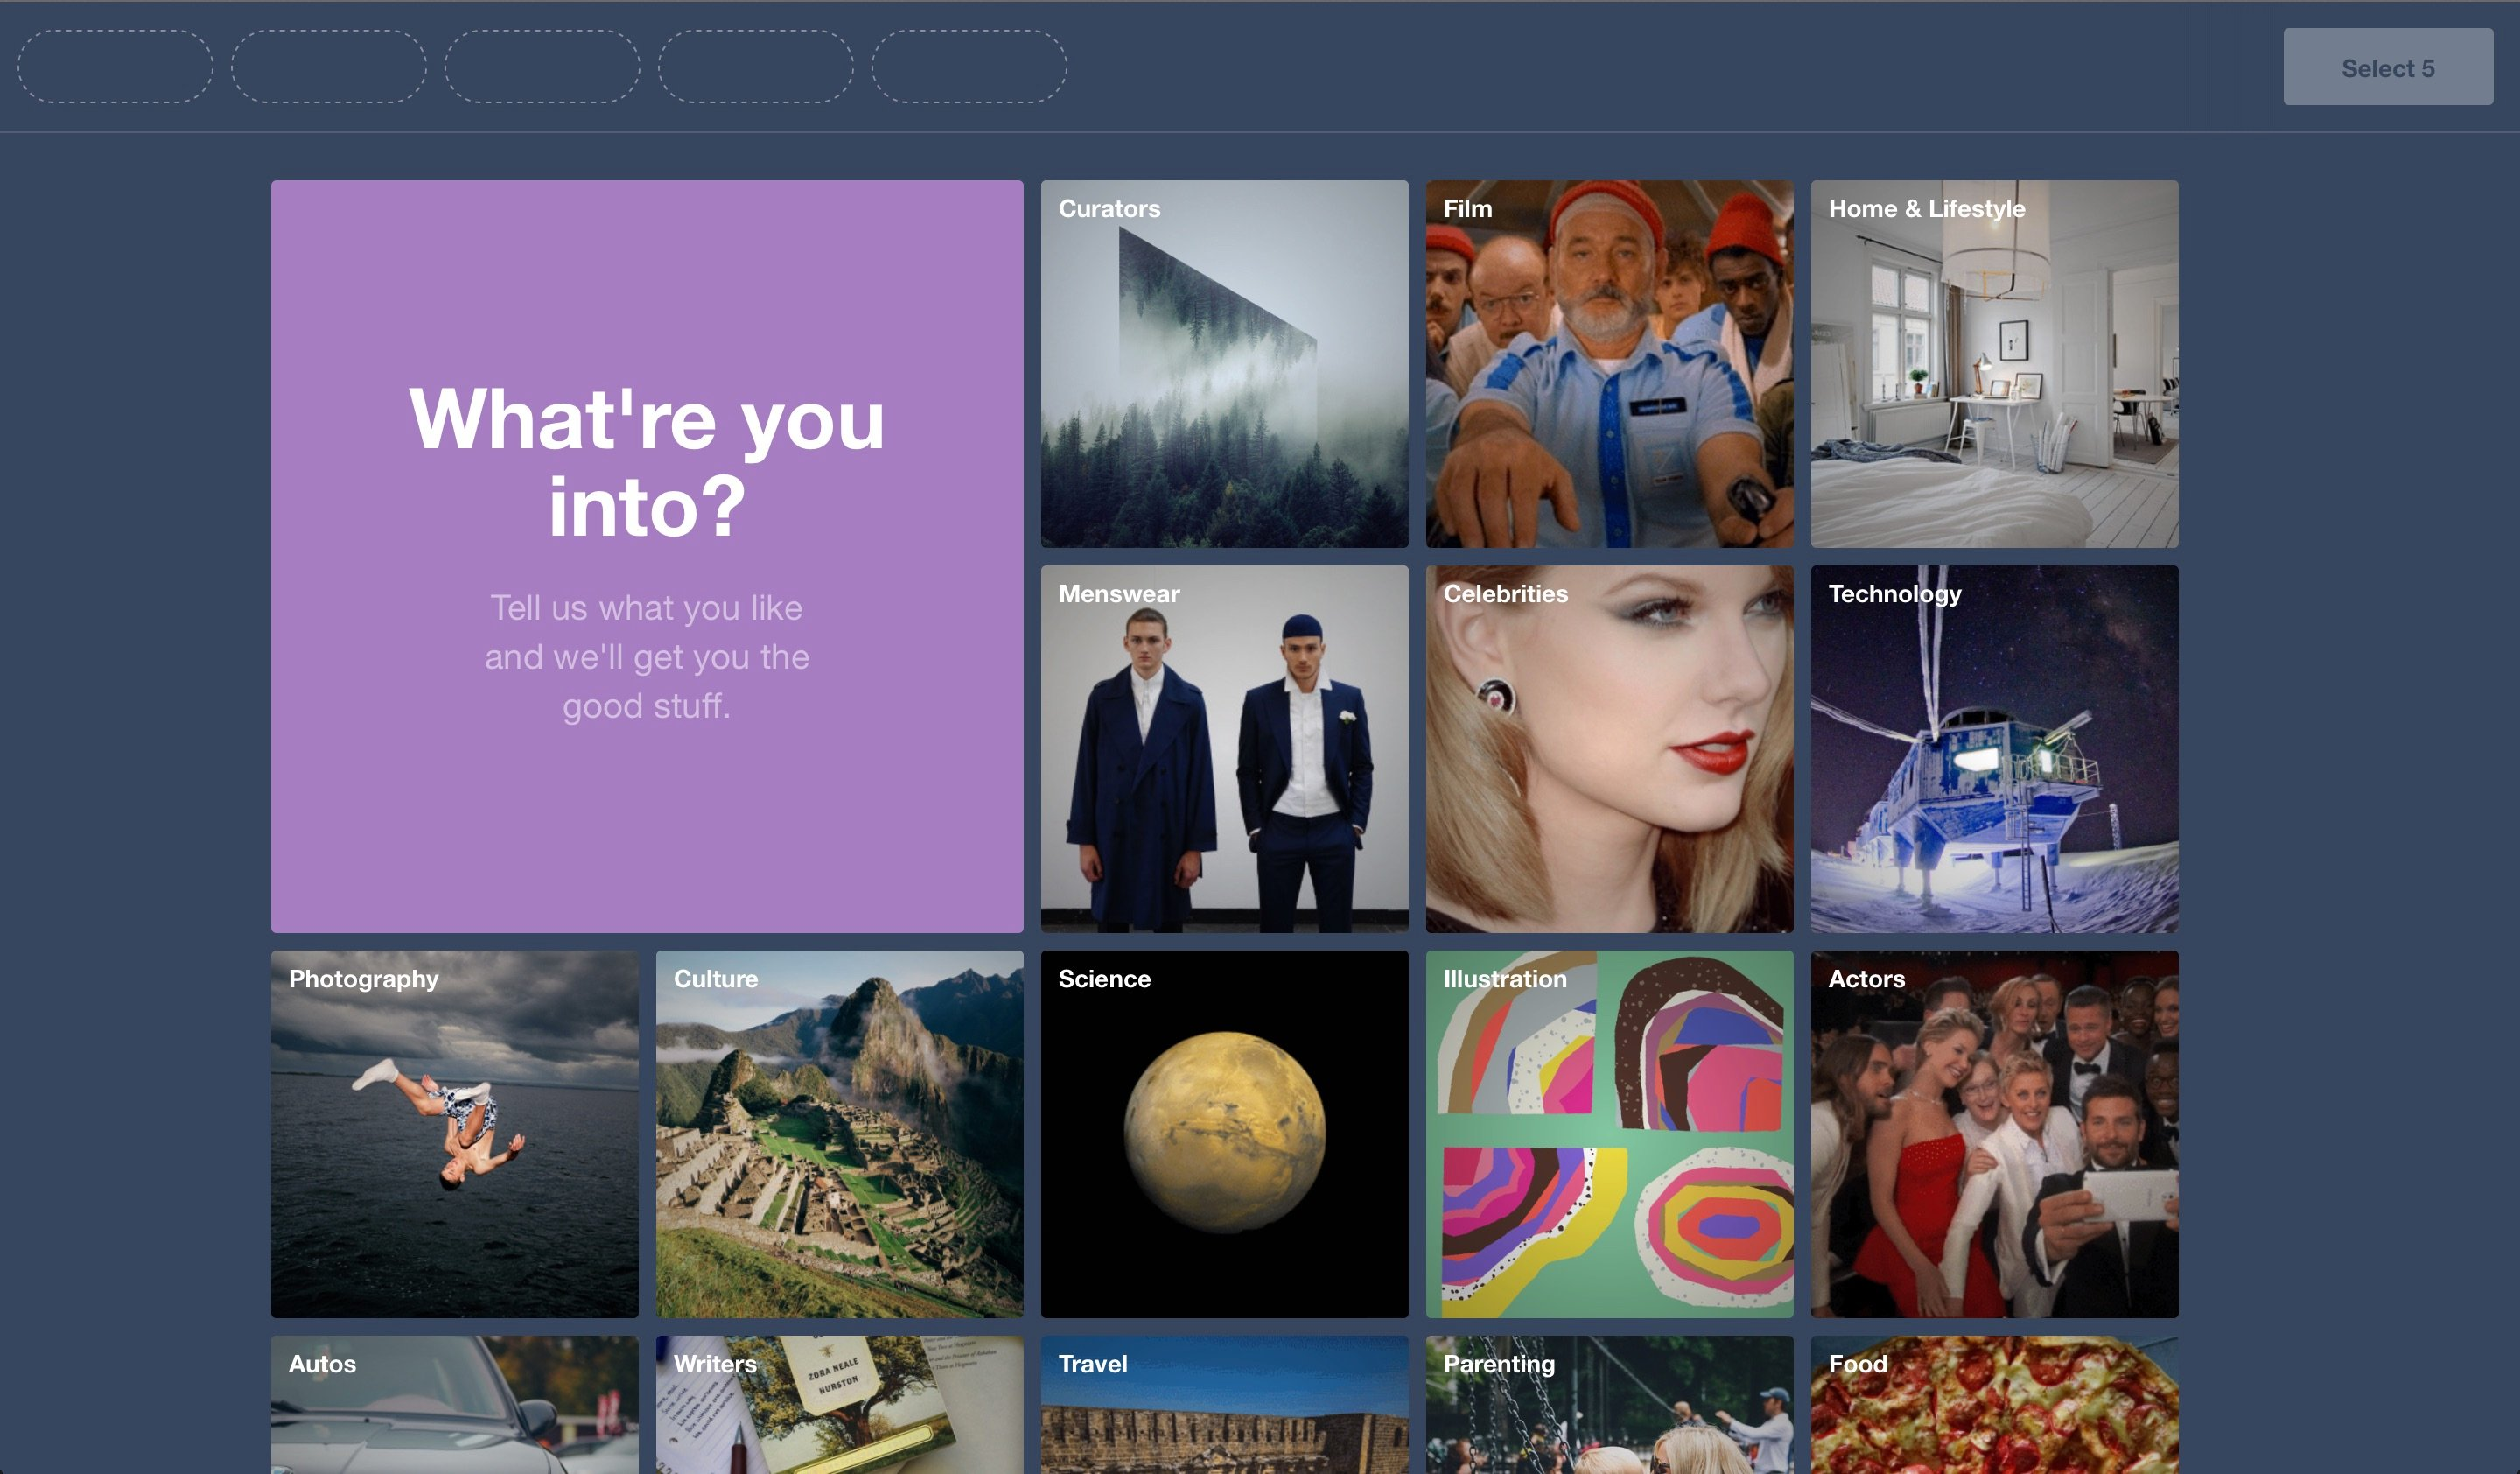 Tumblr helps users log their preferences with images